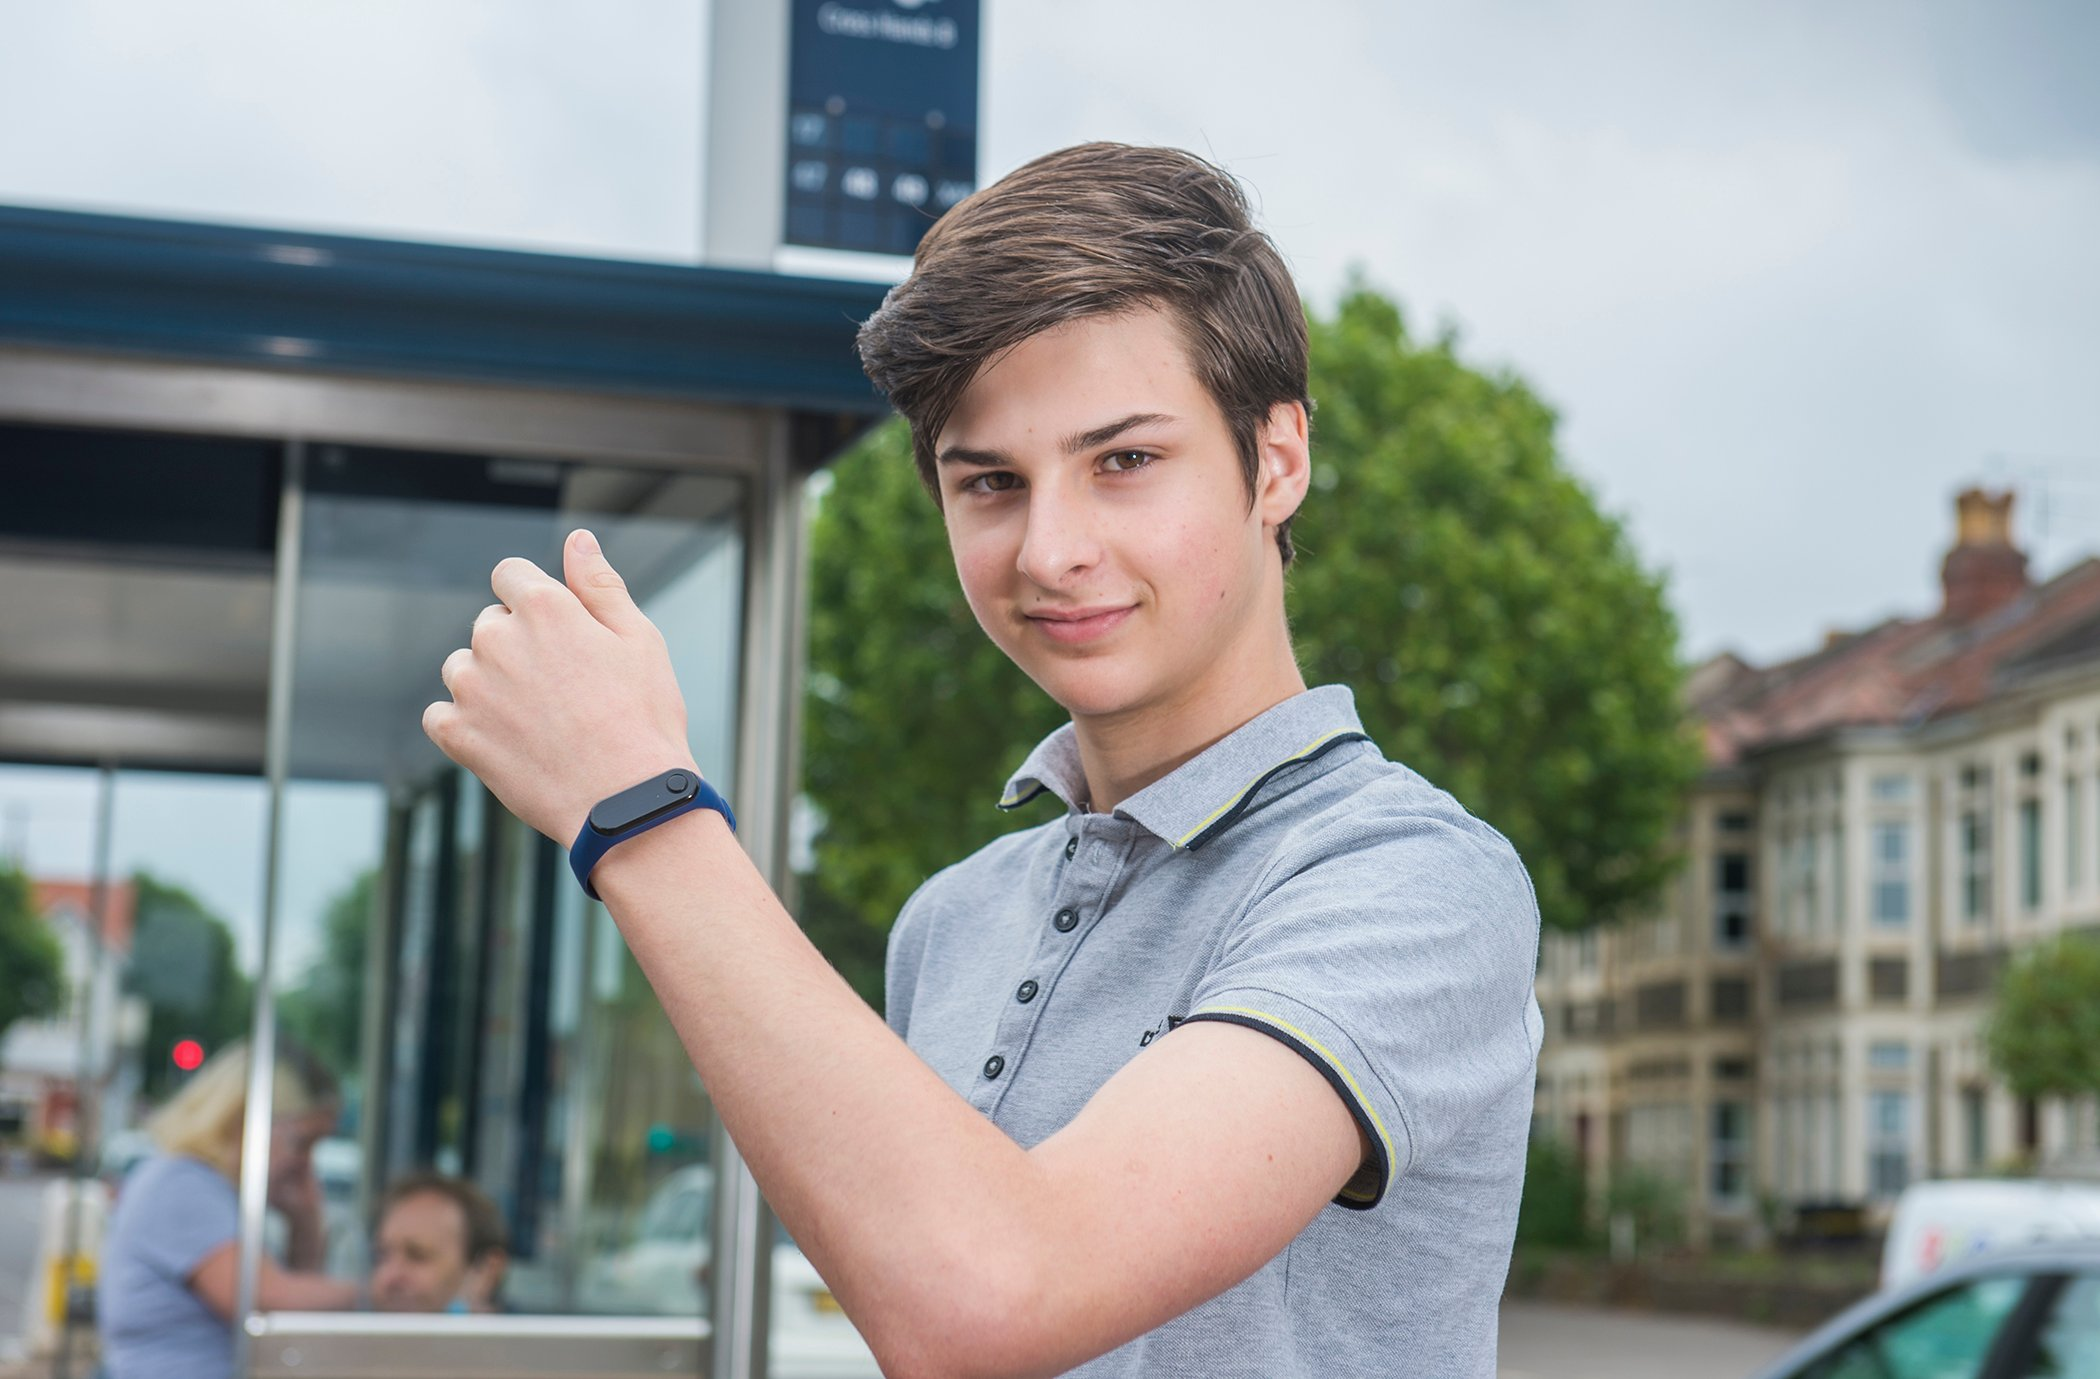 Teenage entrepreneur develops wearable technology to combat spread of Covid-19